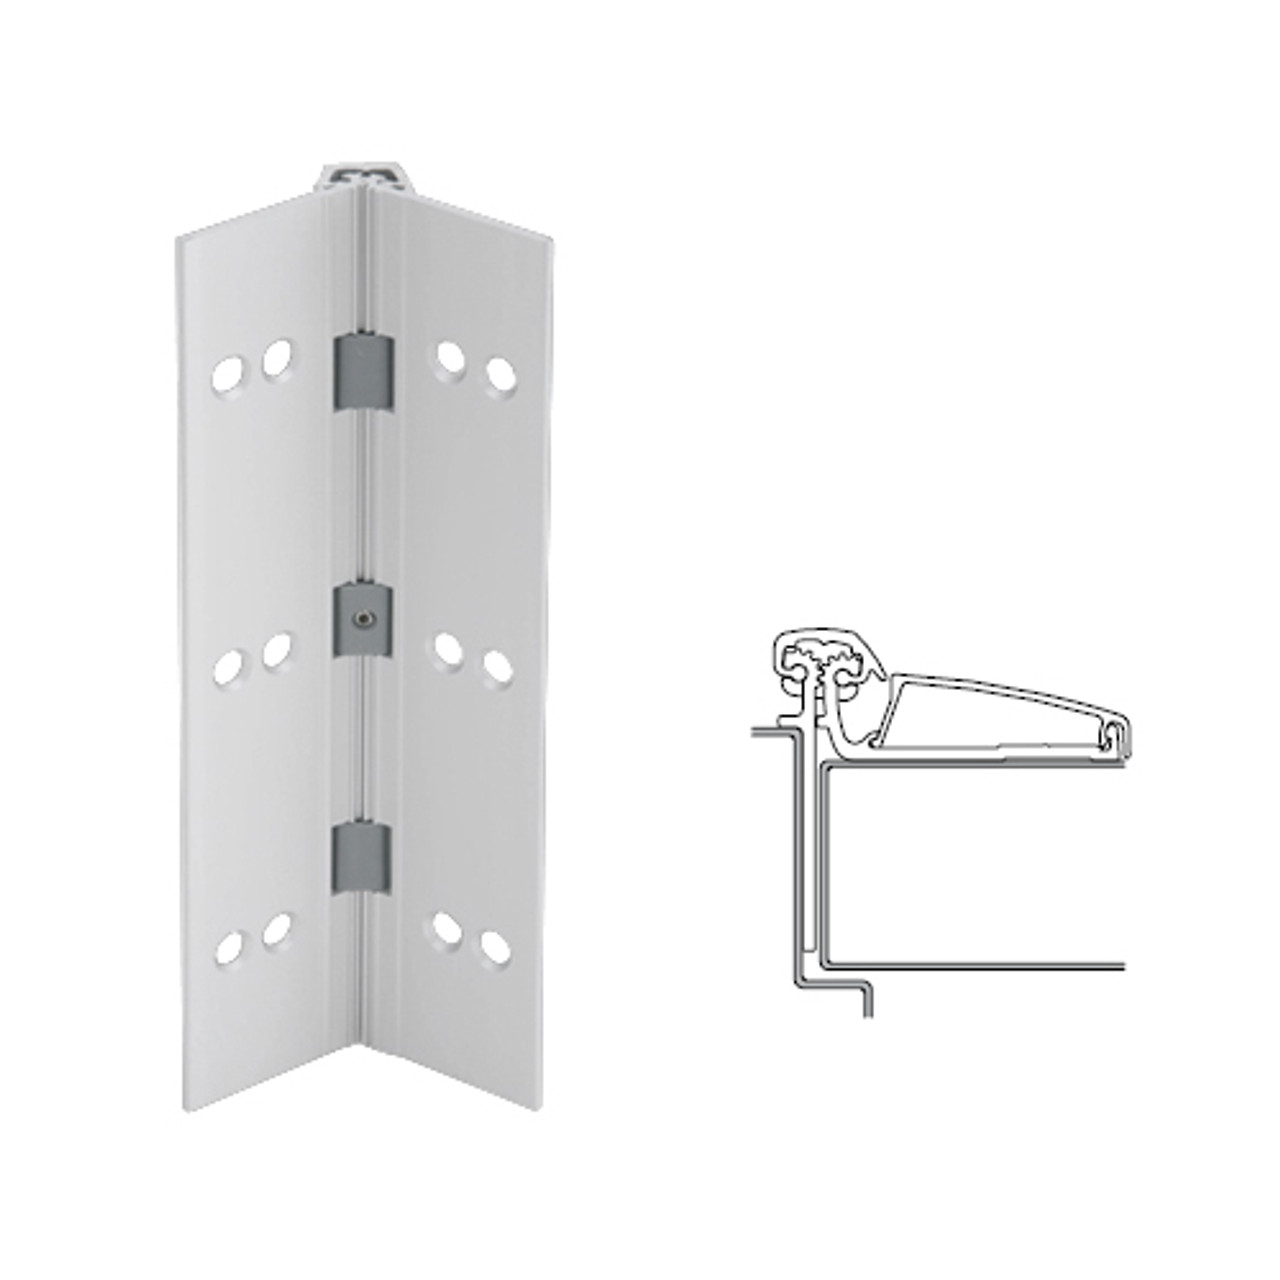 046XY-US28-95-TFWD IVES Adjustable Half Surface Continuous Geared Hinges with Thread Forming Screws in Satin Aluminum